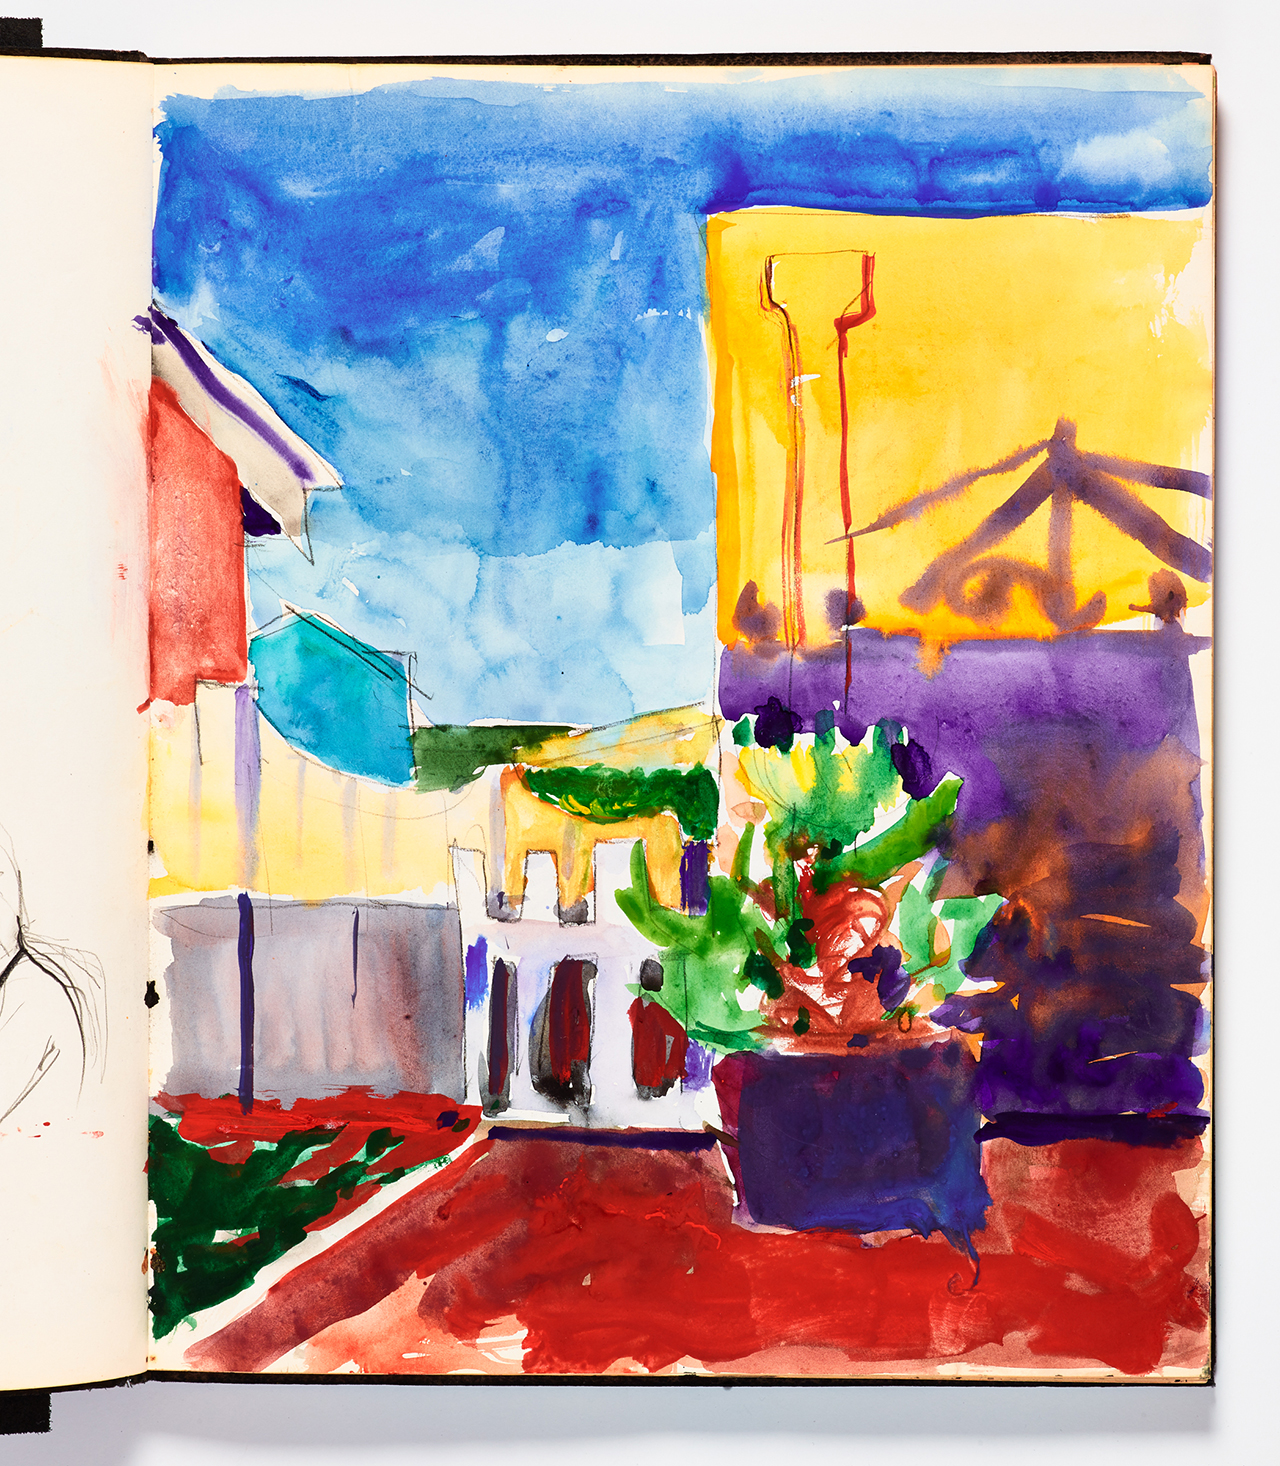 Richard Diebenkorn, Untitled from Sketchbook #17, page 55 (1943–1993), watercolor and graphite on paper, Cantor Arts Center collection, Gift of Phyllis Diebenkorn (© The Richard Diebenkorn Foundation) (click to enlarge)